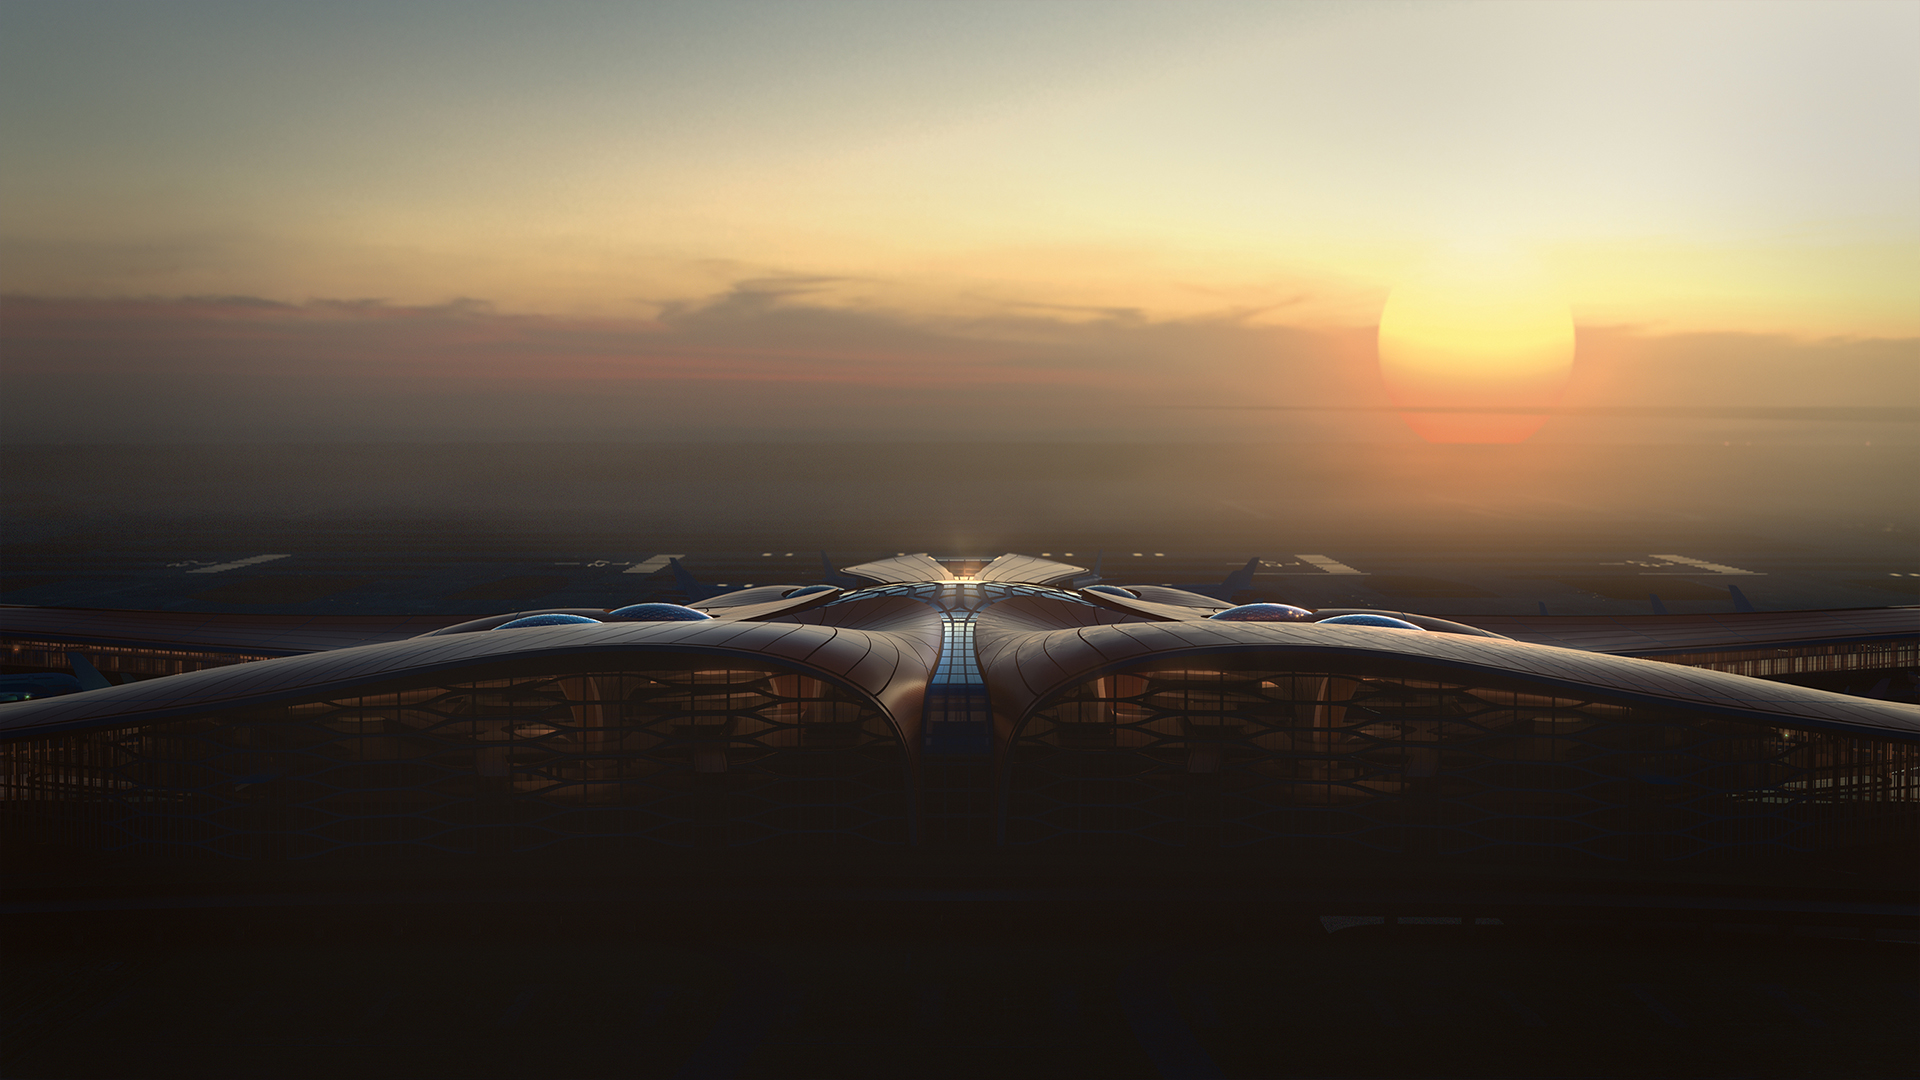 Daxing Airport designed by Zaha Hadid Architects and illustrated by Minmud